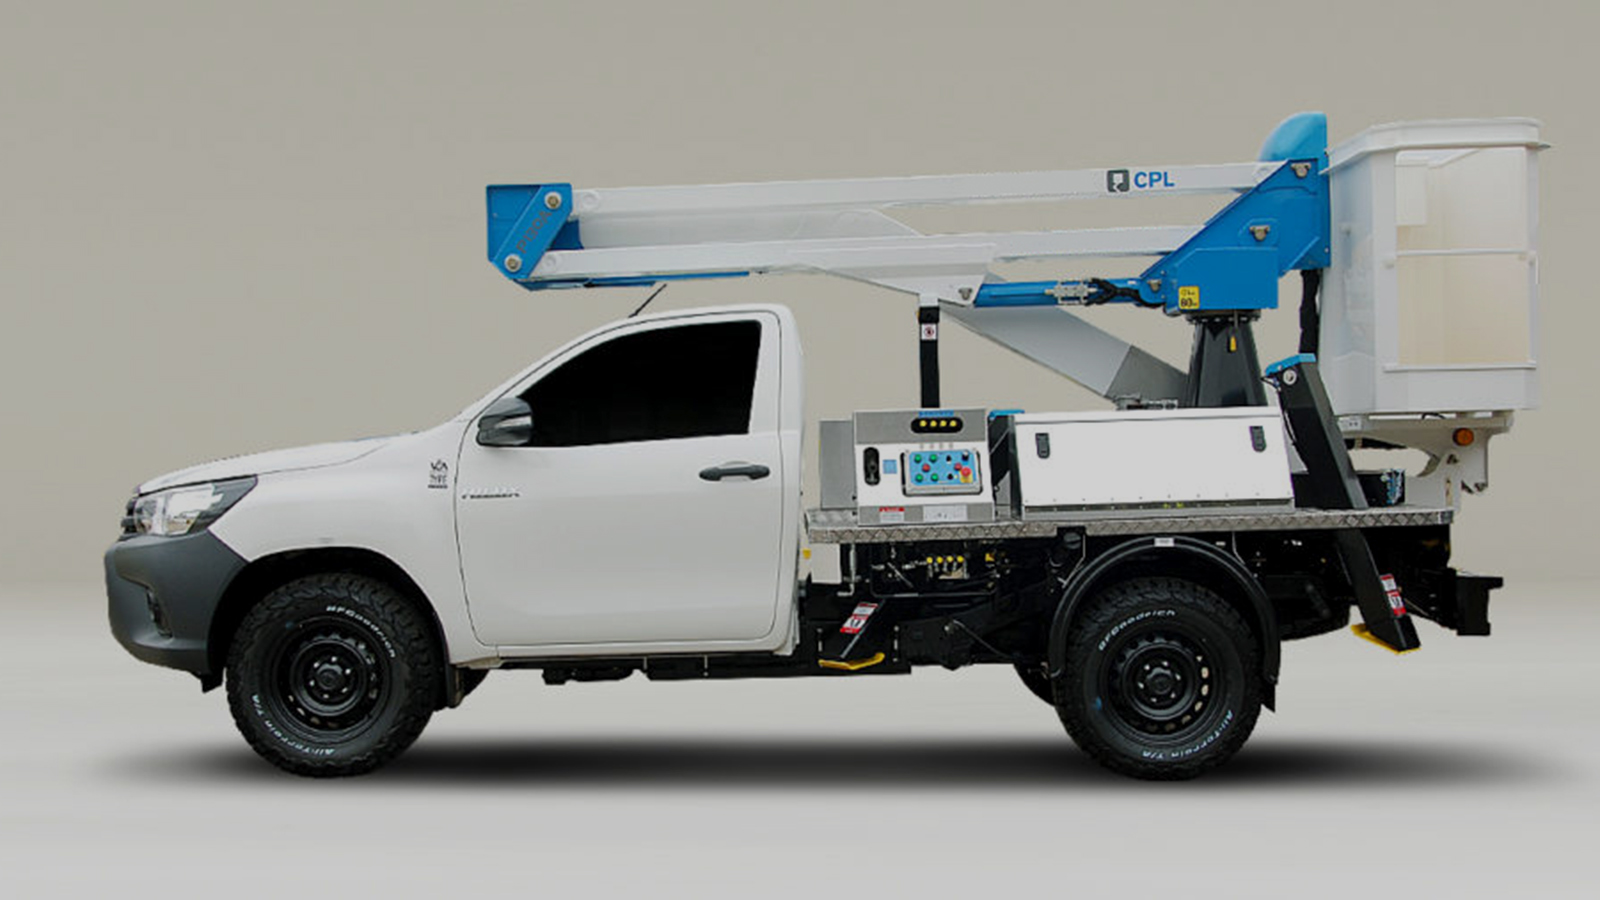 Hilux with bespoke conversion